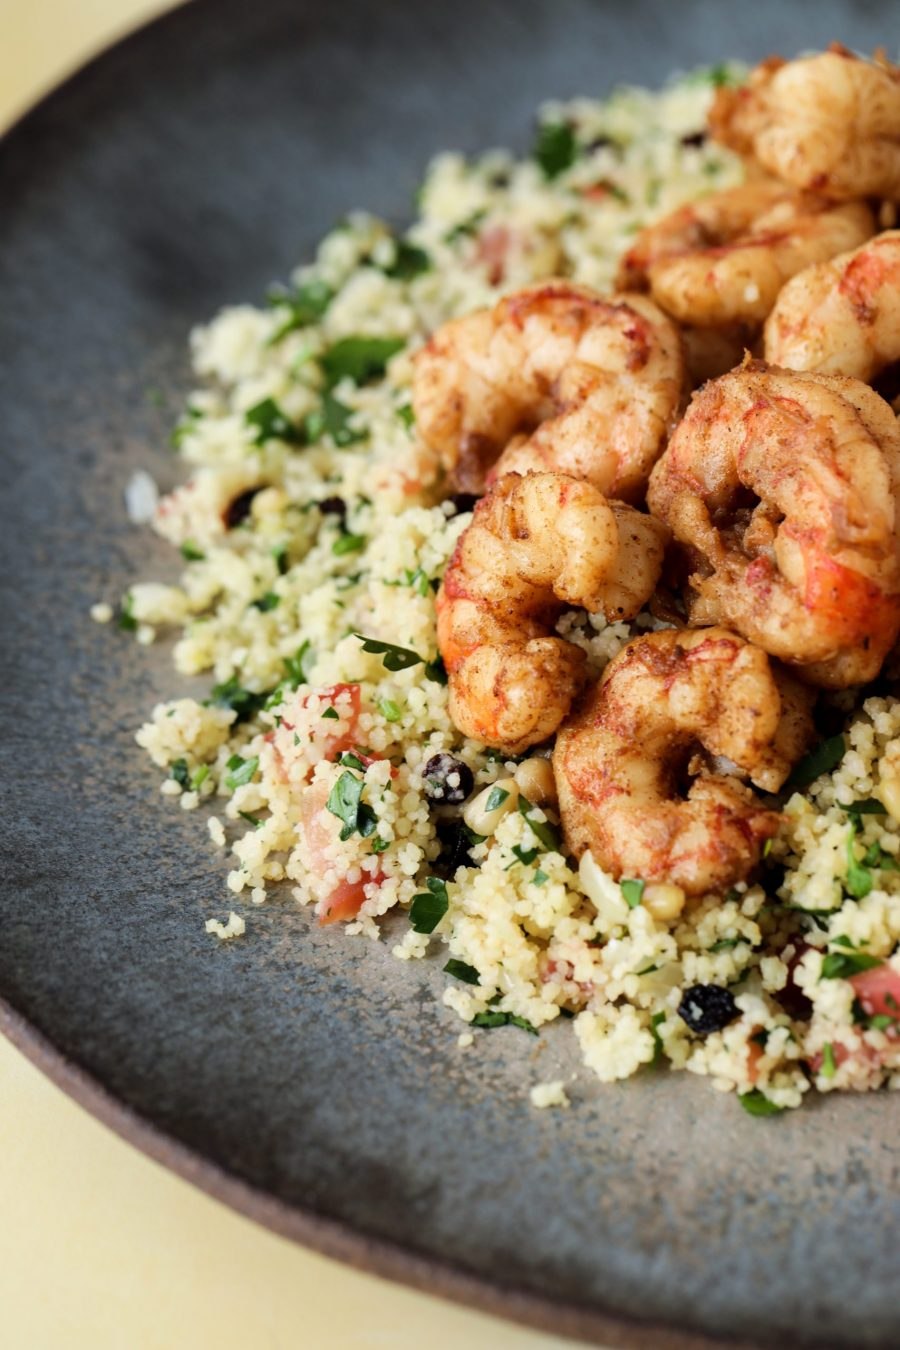 Picture of shrimp with couscous